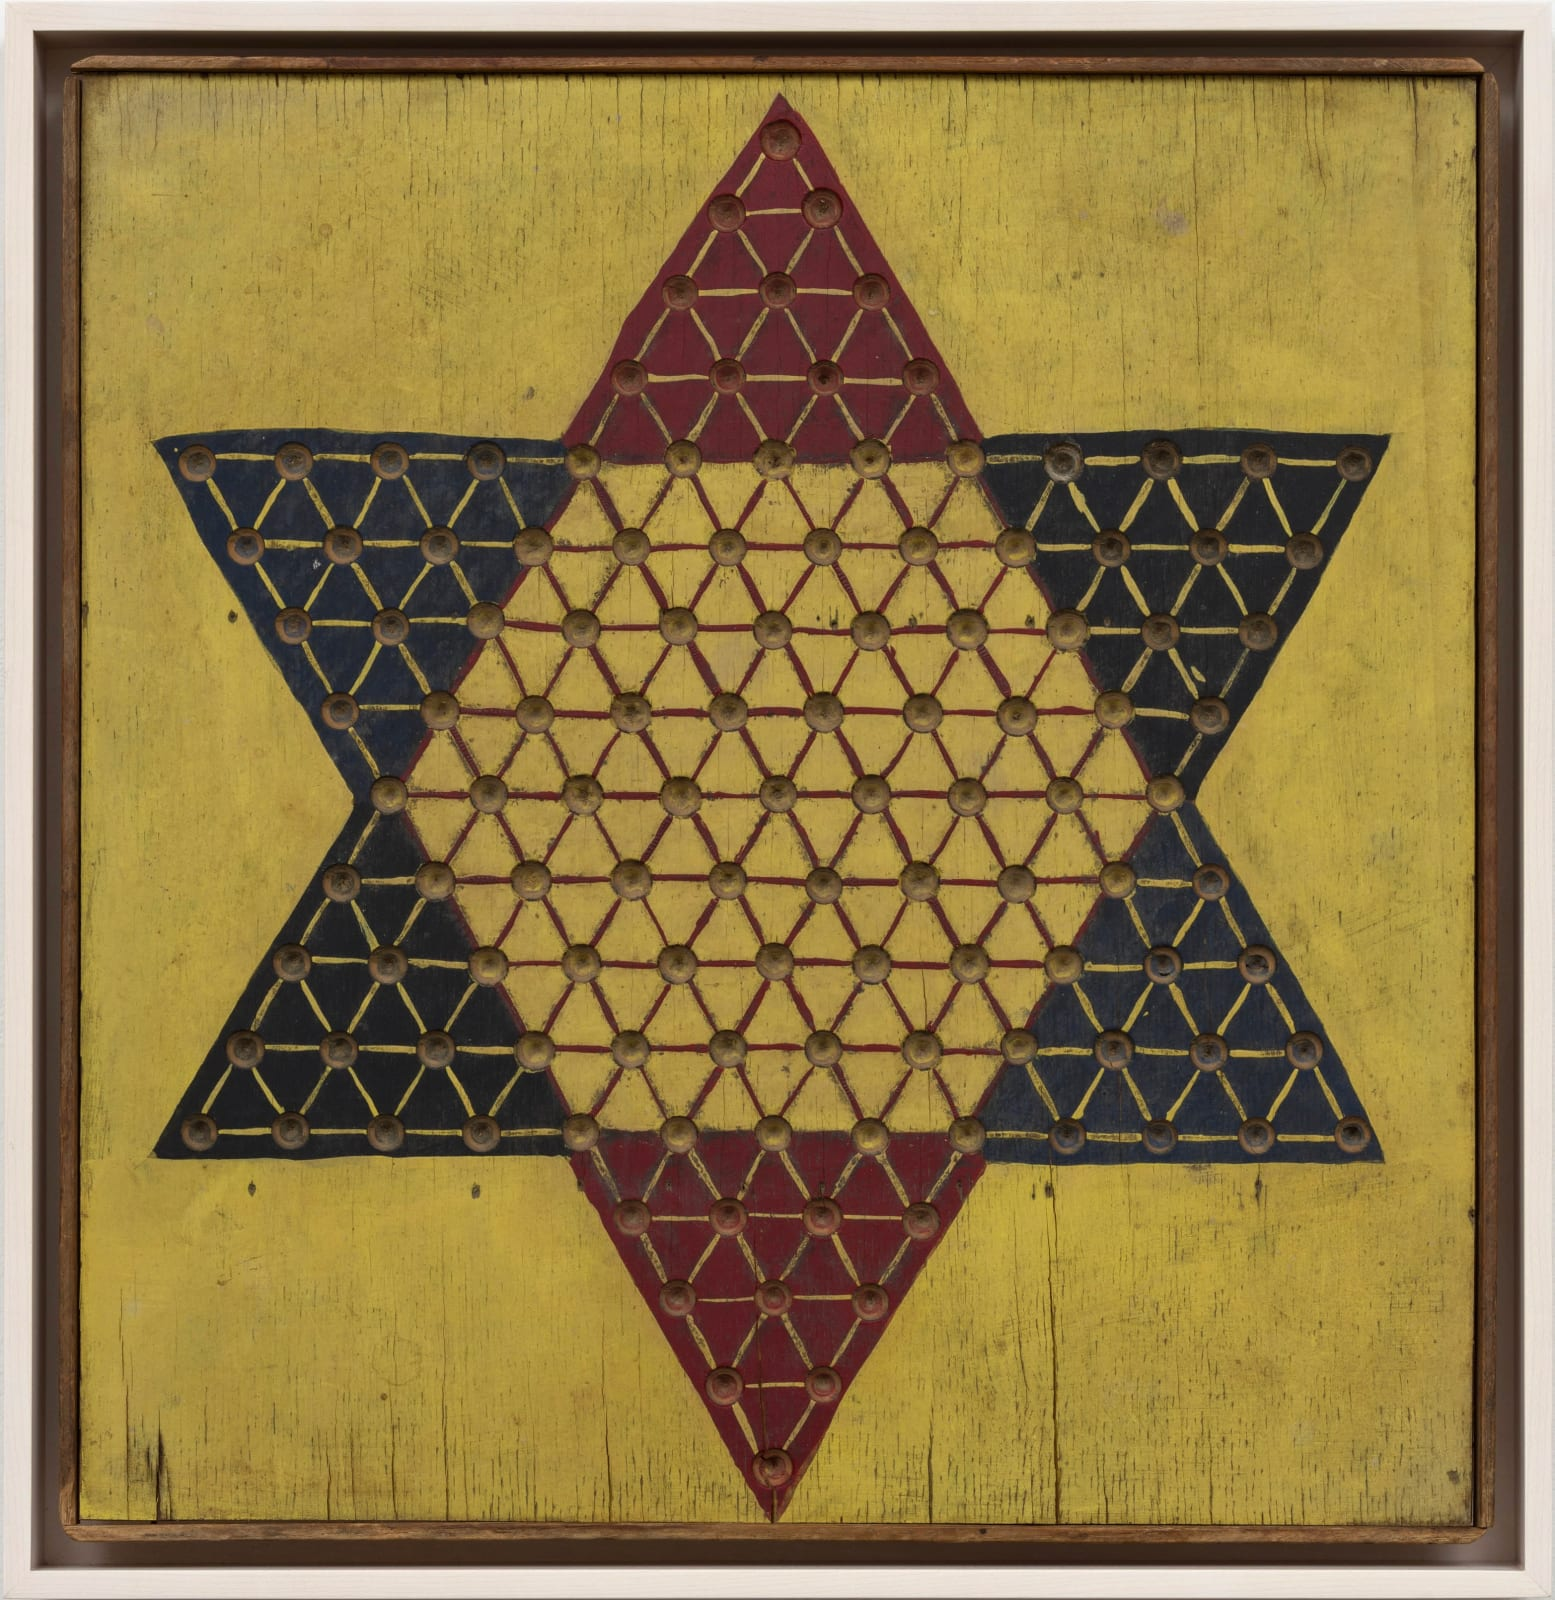 CHINESE CHECKERS BOARD, C. 1930-40 Oil enamel on wood panel 18 1/2 x 17 3/4 in. 47 x 45.1 cm. (AU 258)